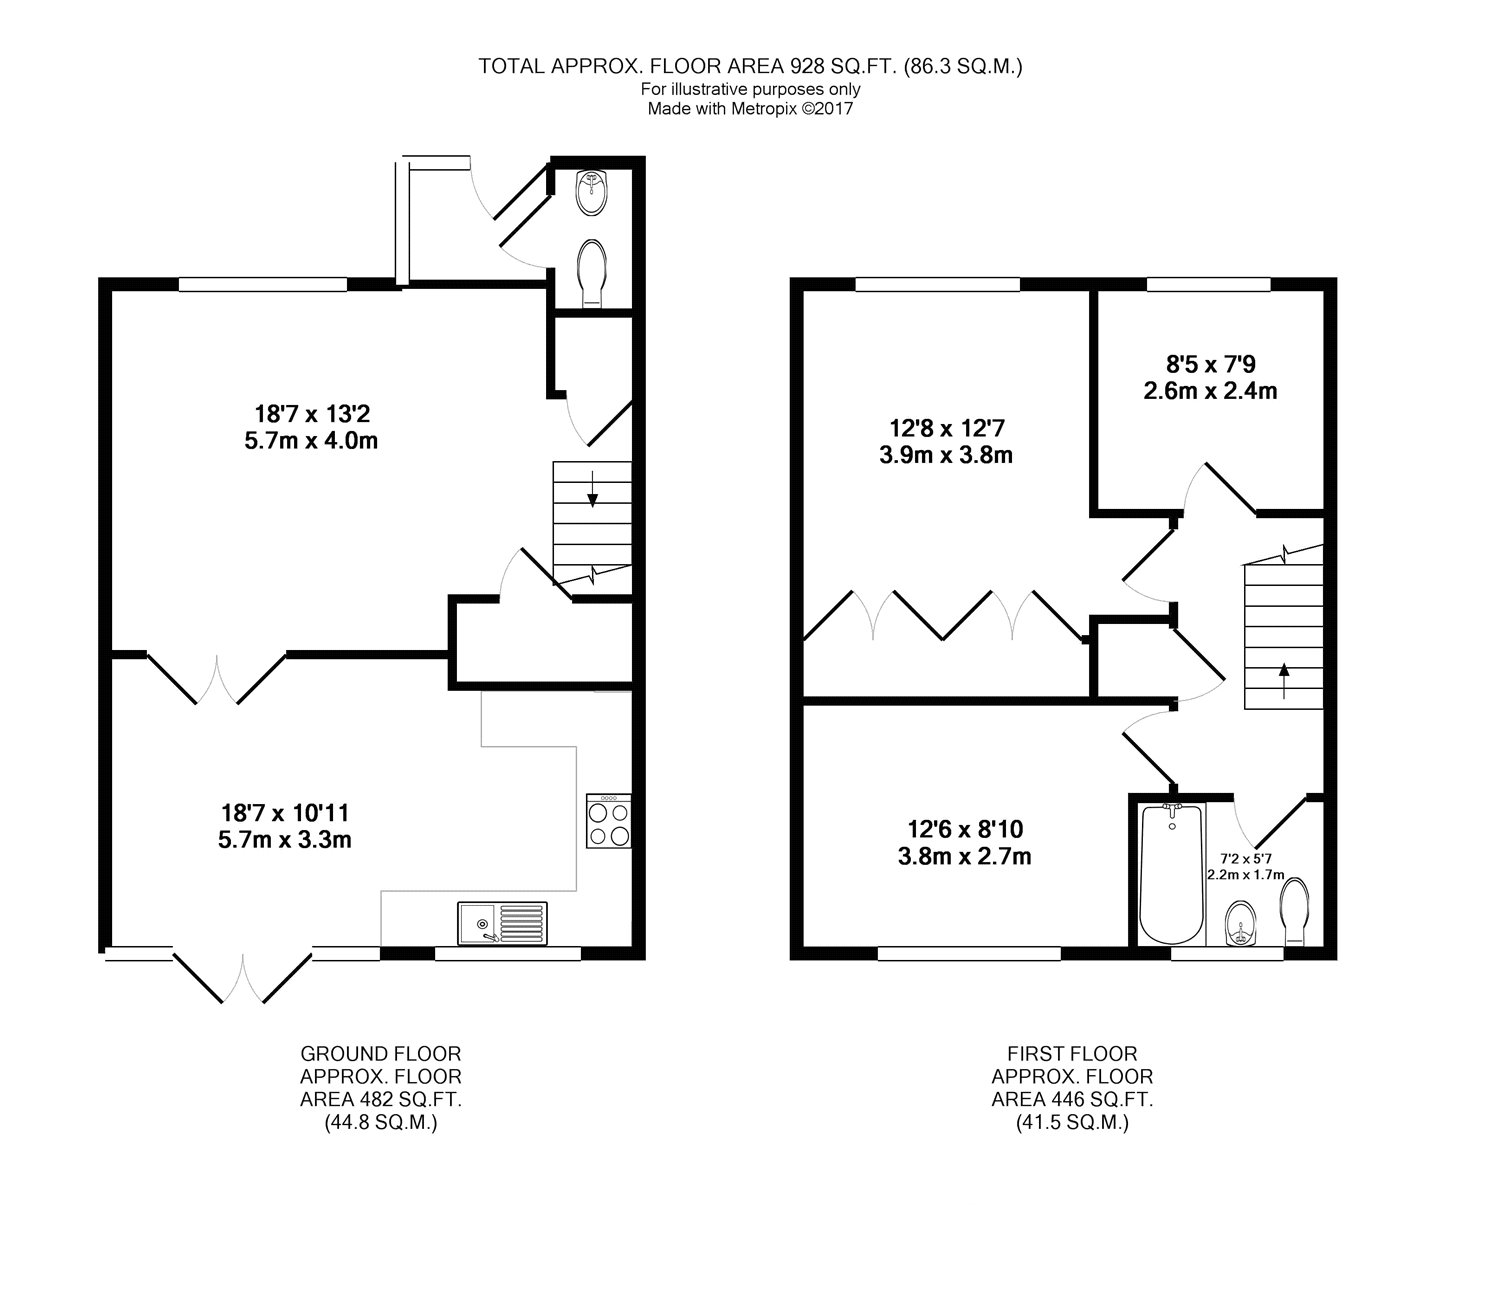 cj hole westbury on trym 3 bedroom house for sale in